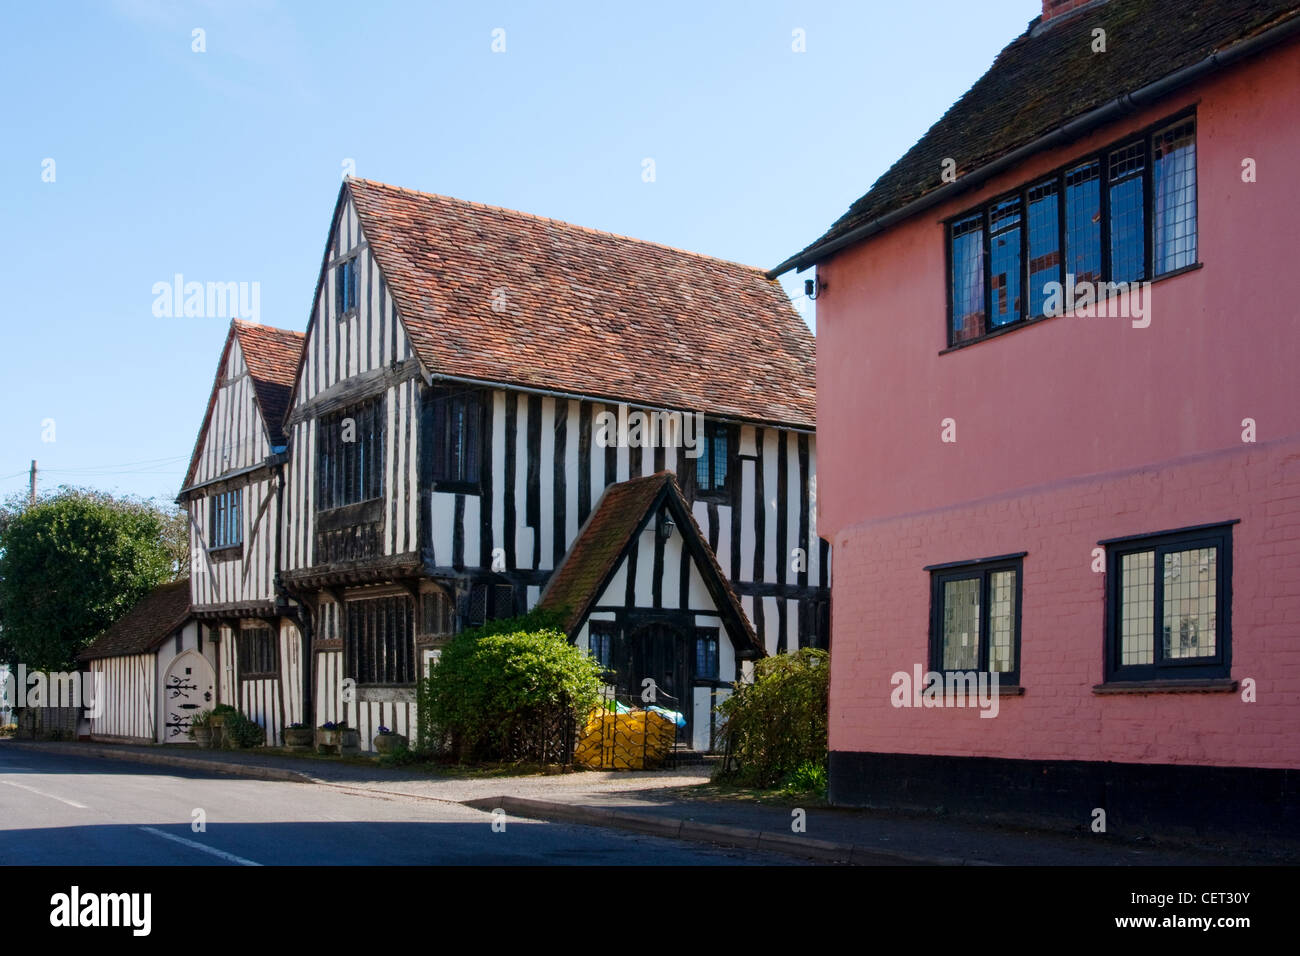 Historical half-timbered houses by a road in the village of Stratford St Mary. - Stock Image